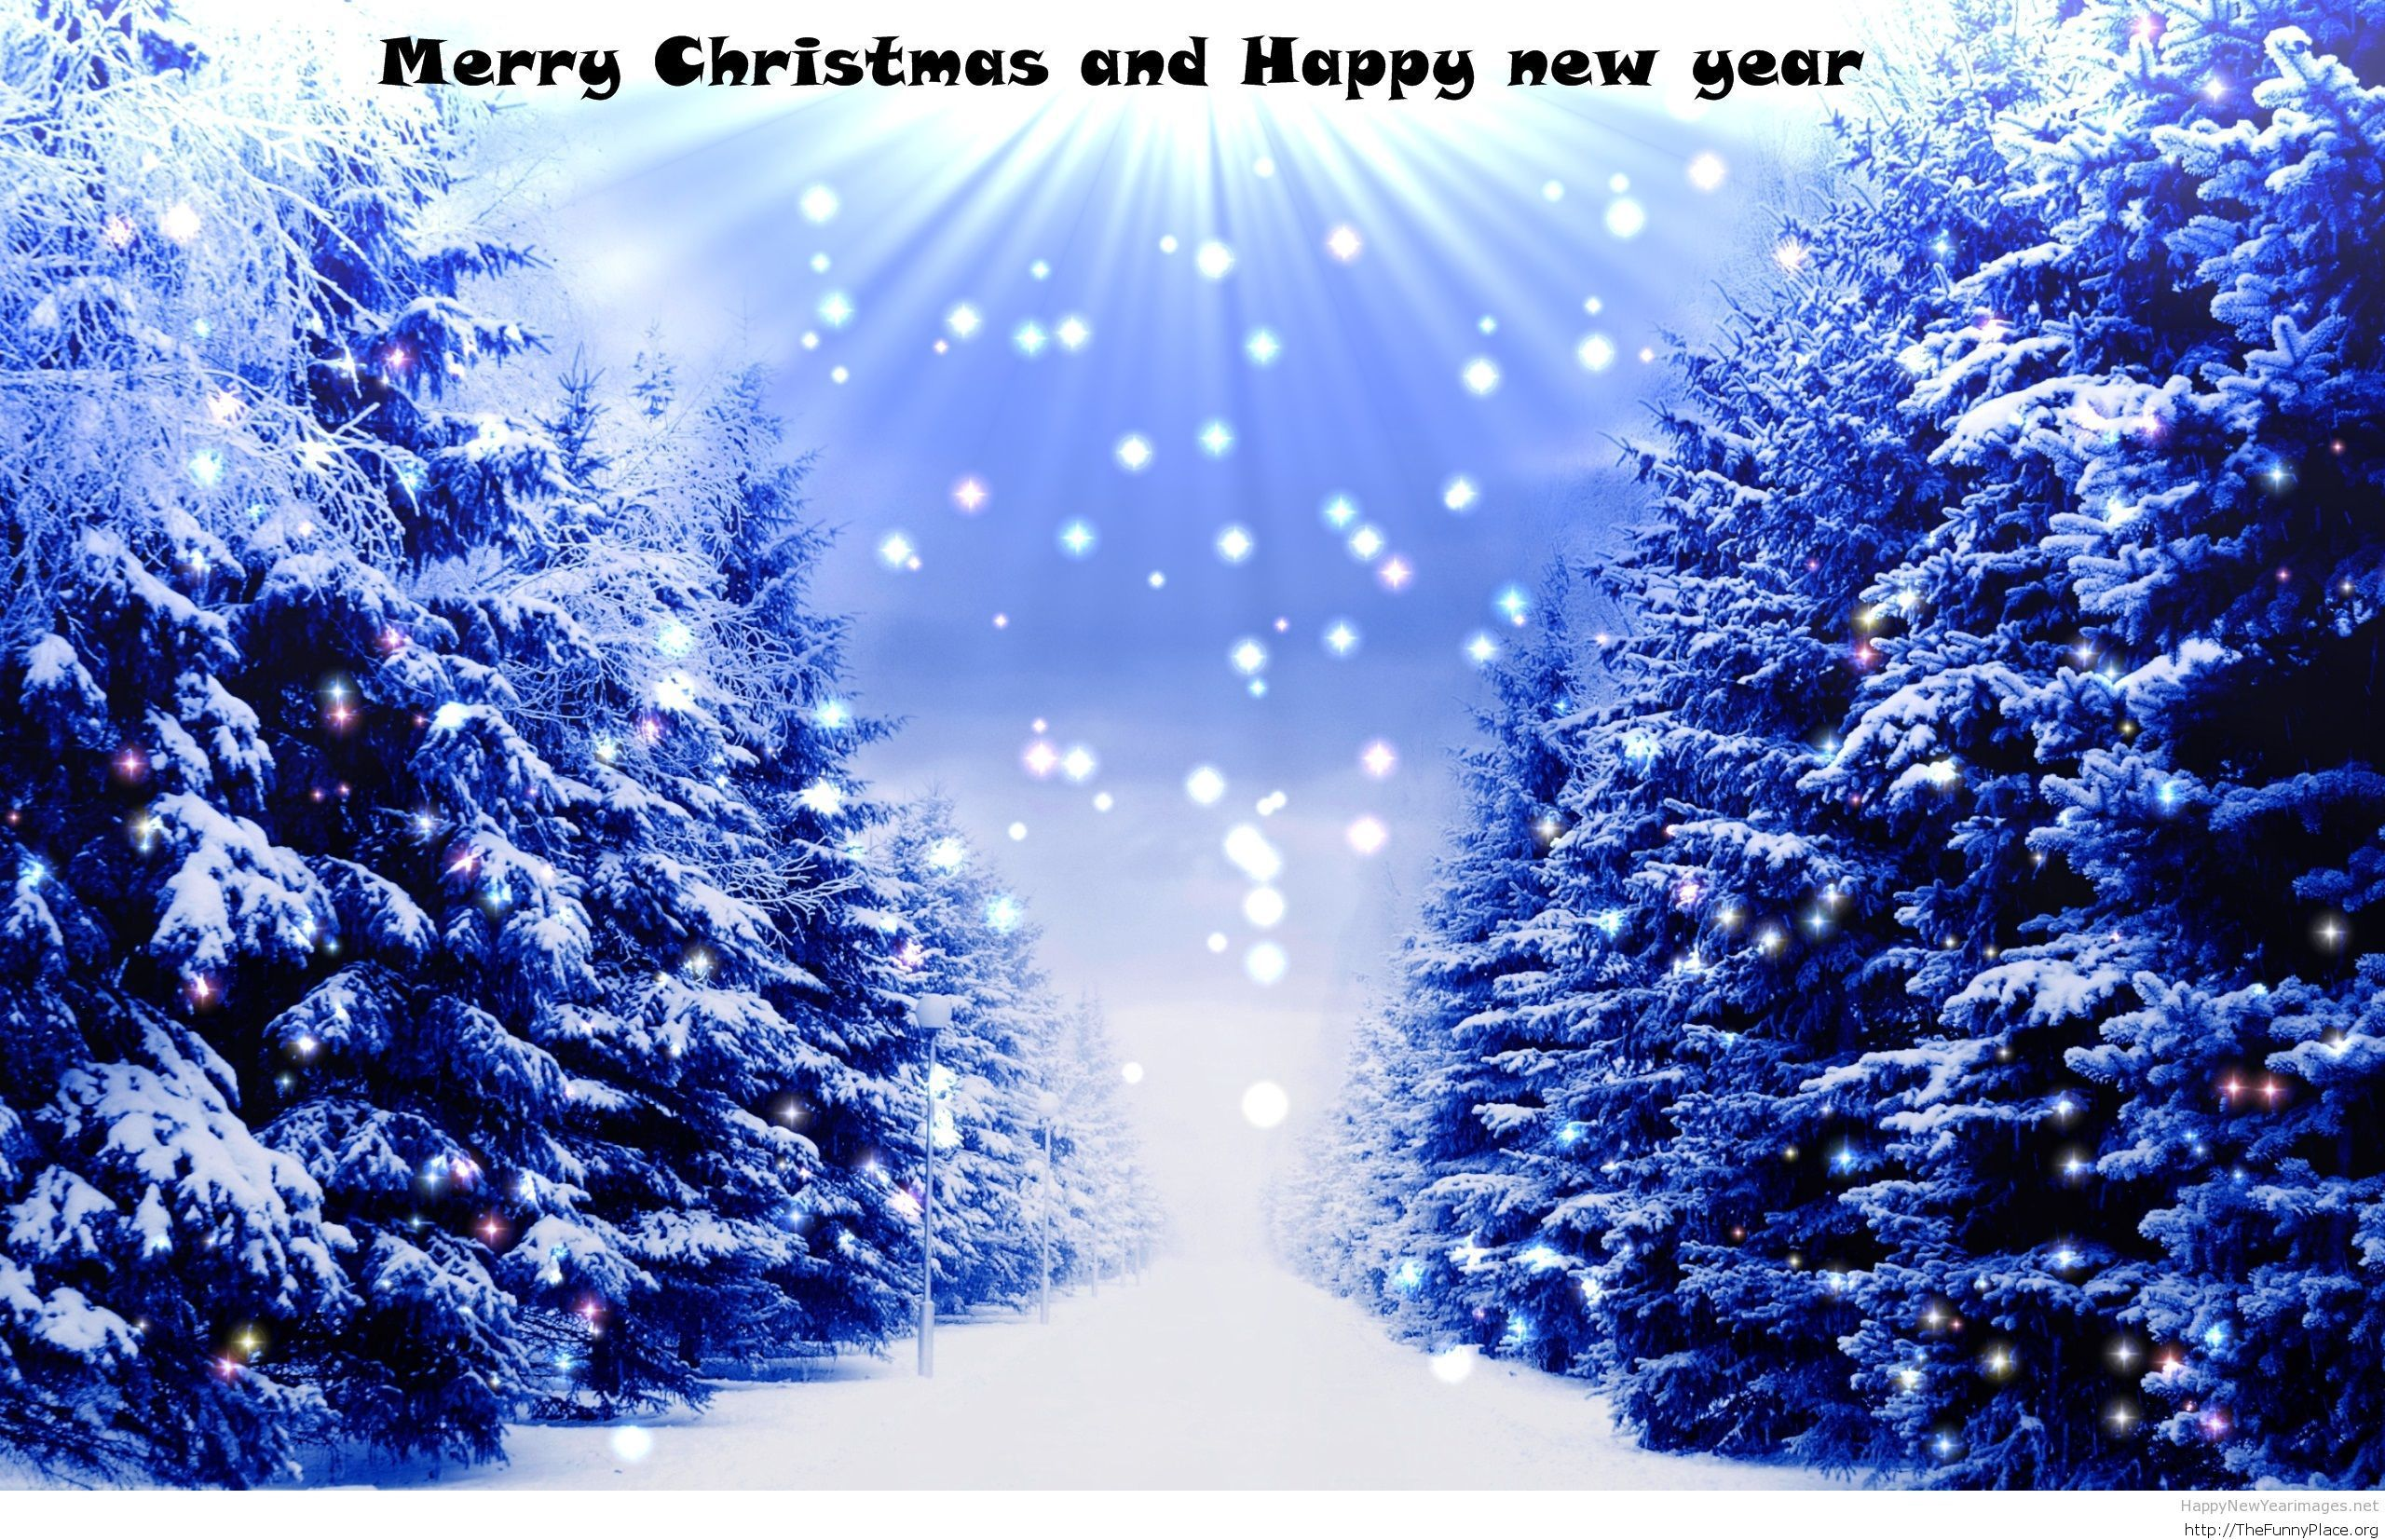 Merry Xmas & Happy New Year beautiful forest